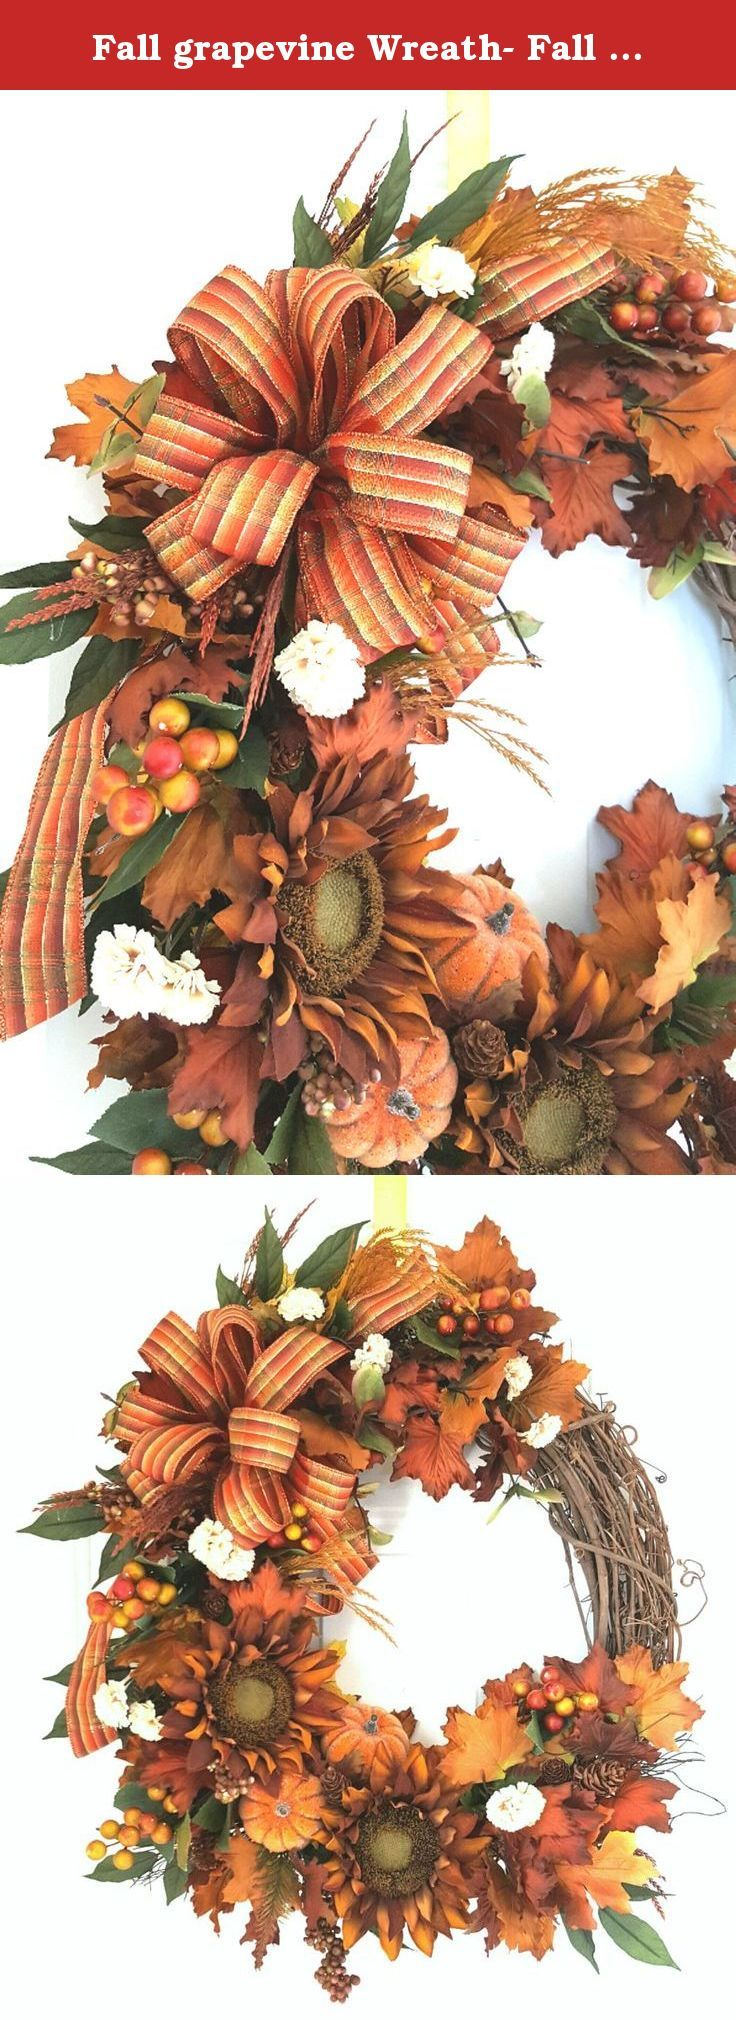 "Fall grapevine Wreath- Fall Wreath- Elegant Fall Wreath- Autumn Wreath- Harvest Wreath- Fall Decor- Thanksgiving Wreath. This beautiful Fall Sunflower and pumpkin wreath is truly stunning in the rusty brown Sunflower and fall leaf colors!! I began this on an 18"" grapevine wreath adorned with lots of gorgeous fall leaves, Sunflowers, sugared pumpkins, and greenery. My final accent was the handmade bow drooping over the side. This elegant fall wreath can be displayed throughout the..."